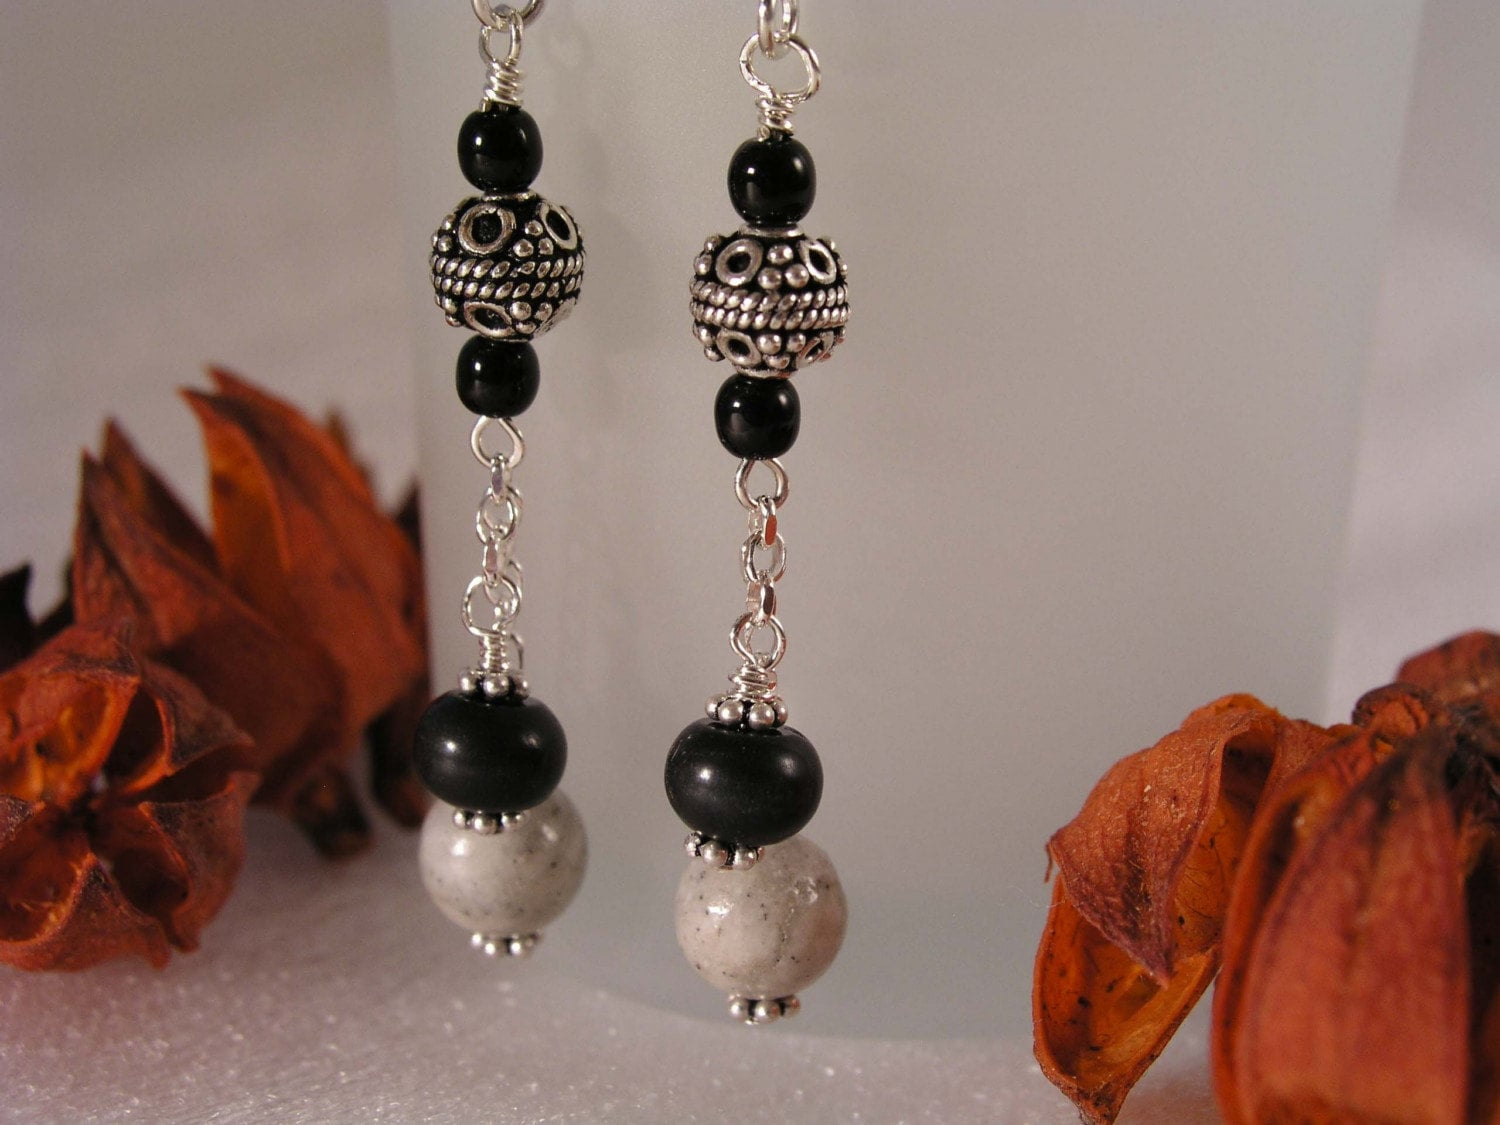 Blackstone, Bali, Riverstone, and Sterling Silver Earrings